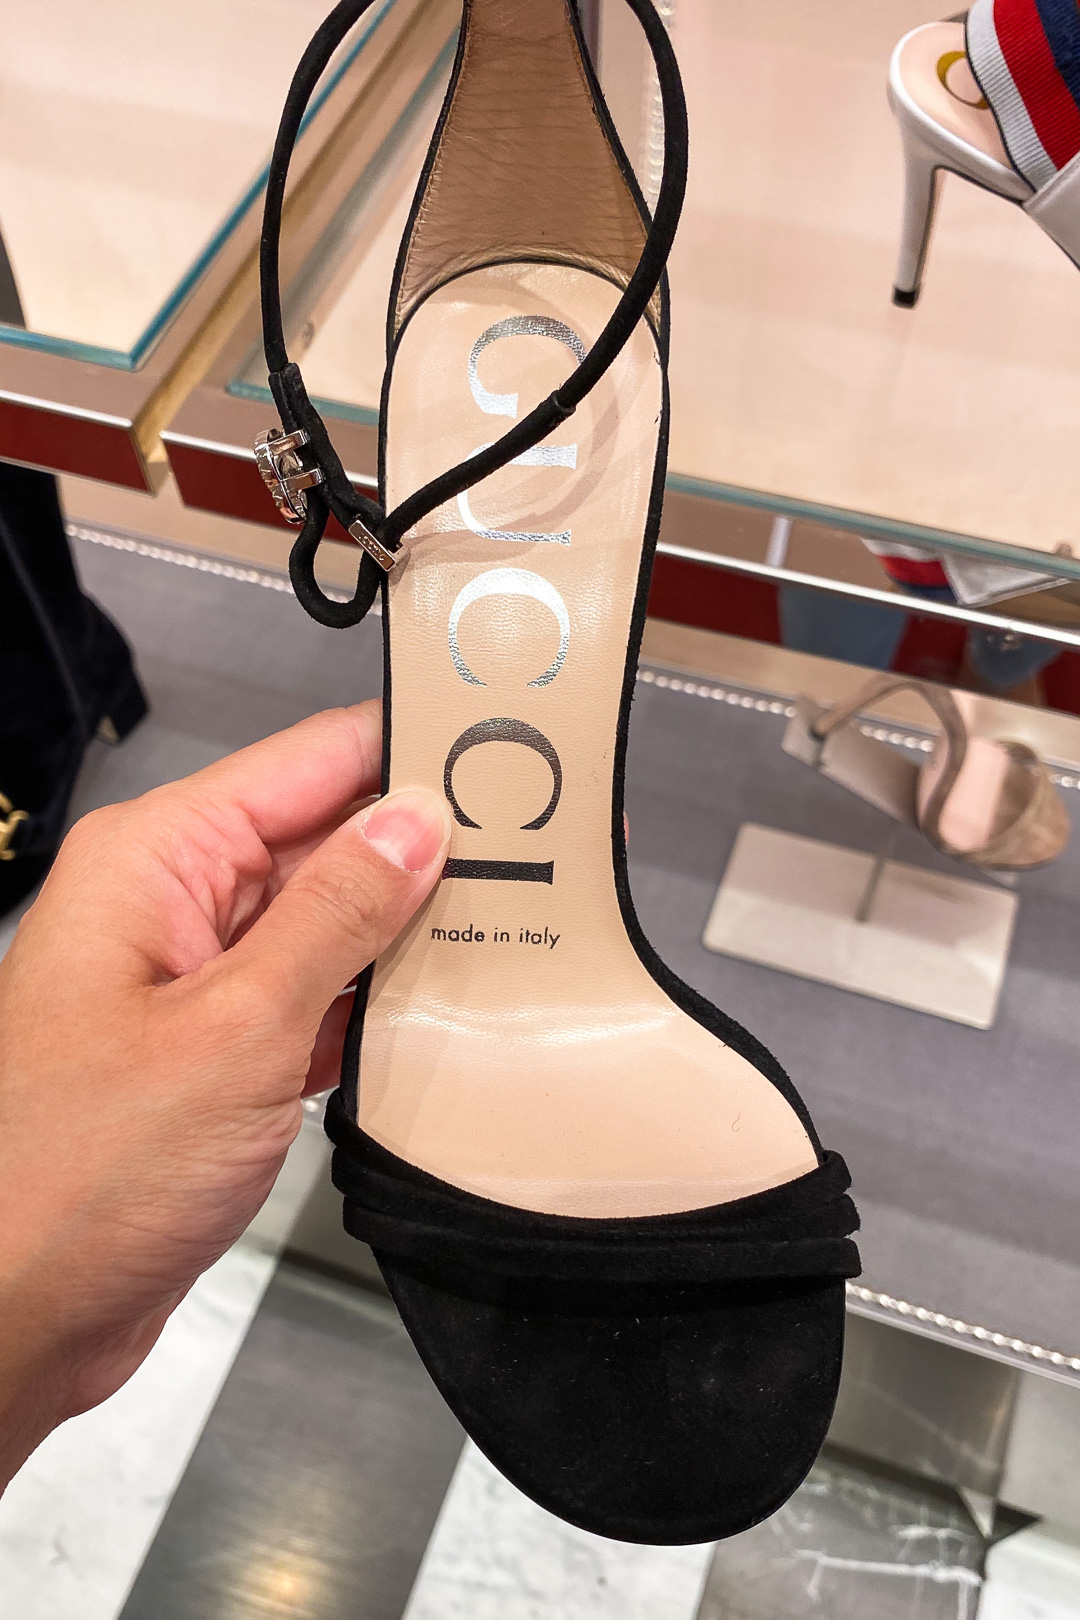 Heels at the Gucci Outlet